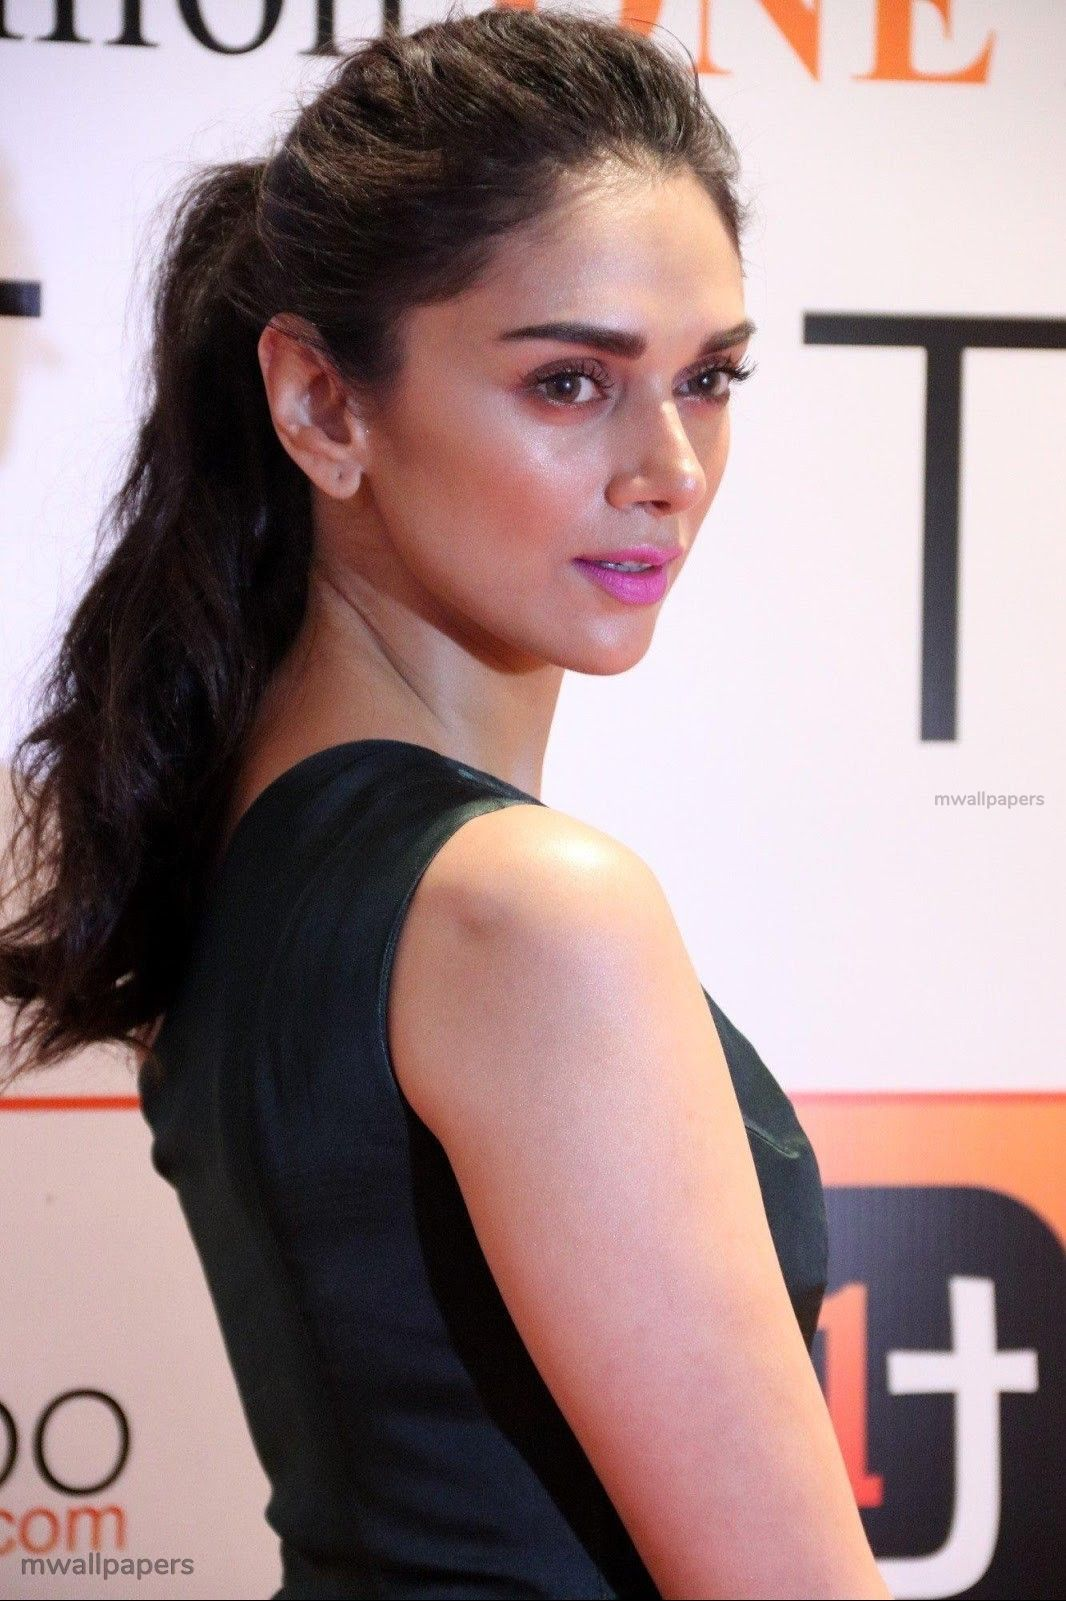 Aditi Rao Hydari Beautiful HD Photoshoot Stills (1080p) (30941) - Aditi Rao Hydari